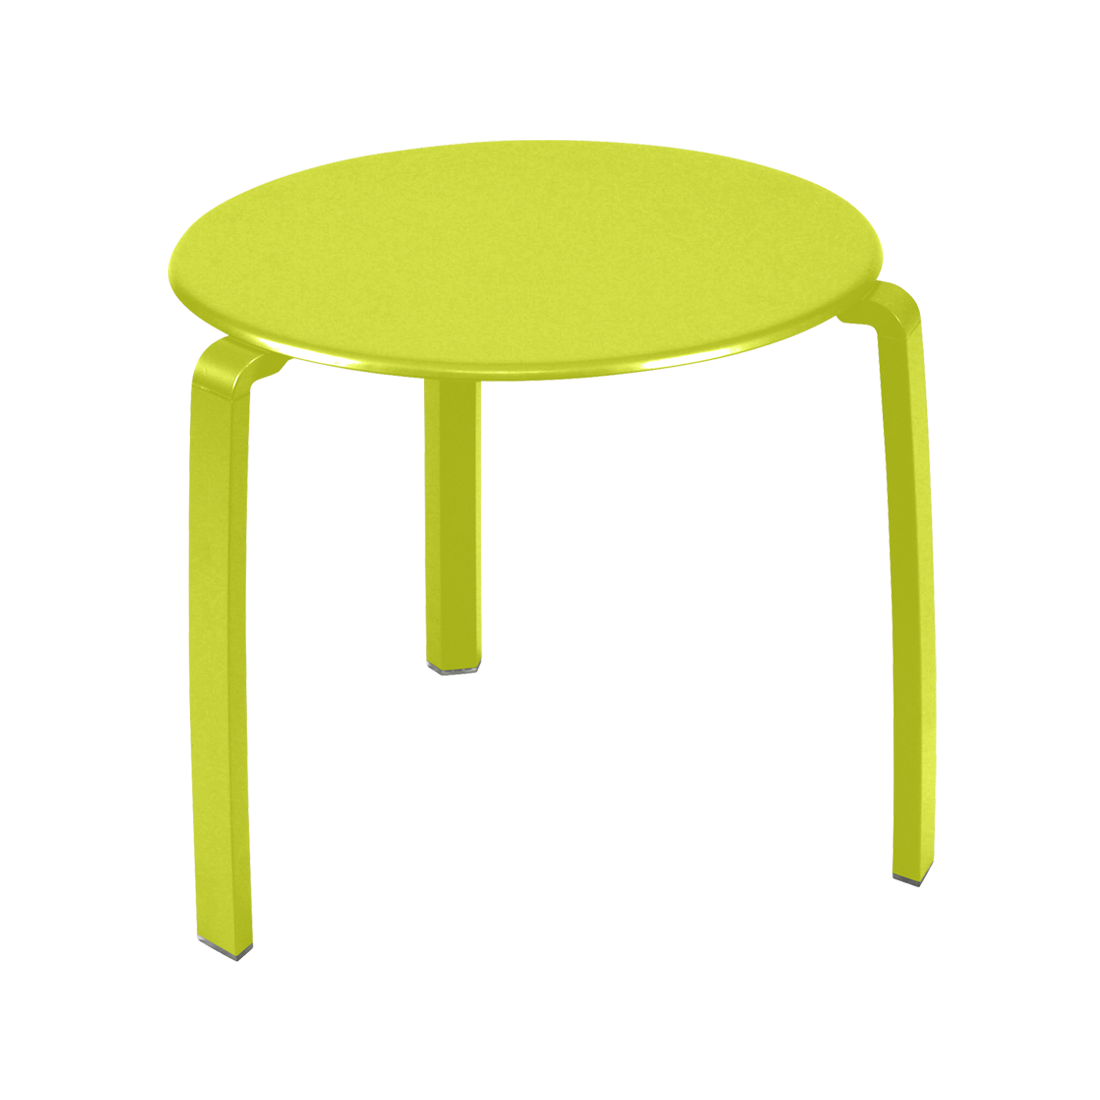 aliz low table metal low table garden furniture